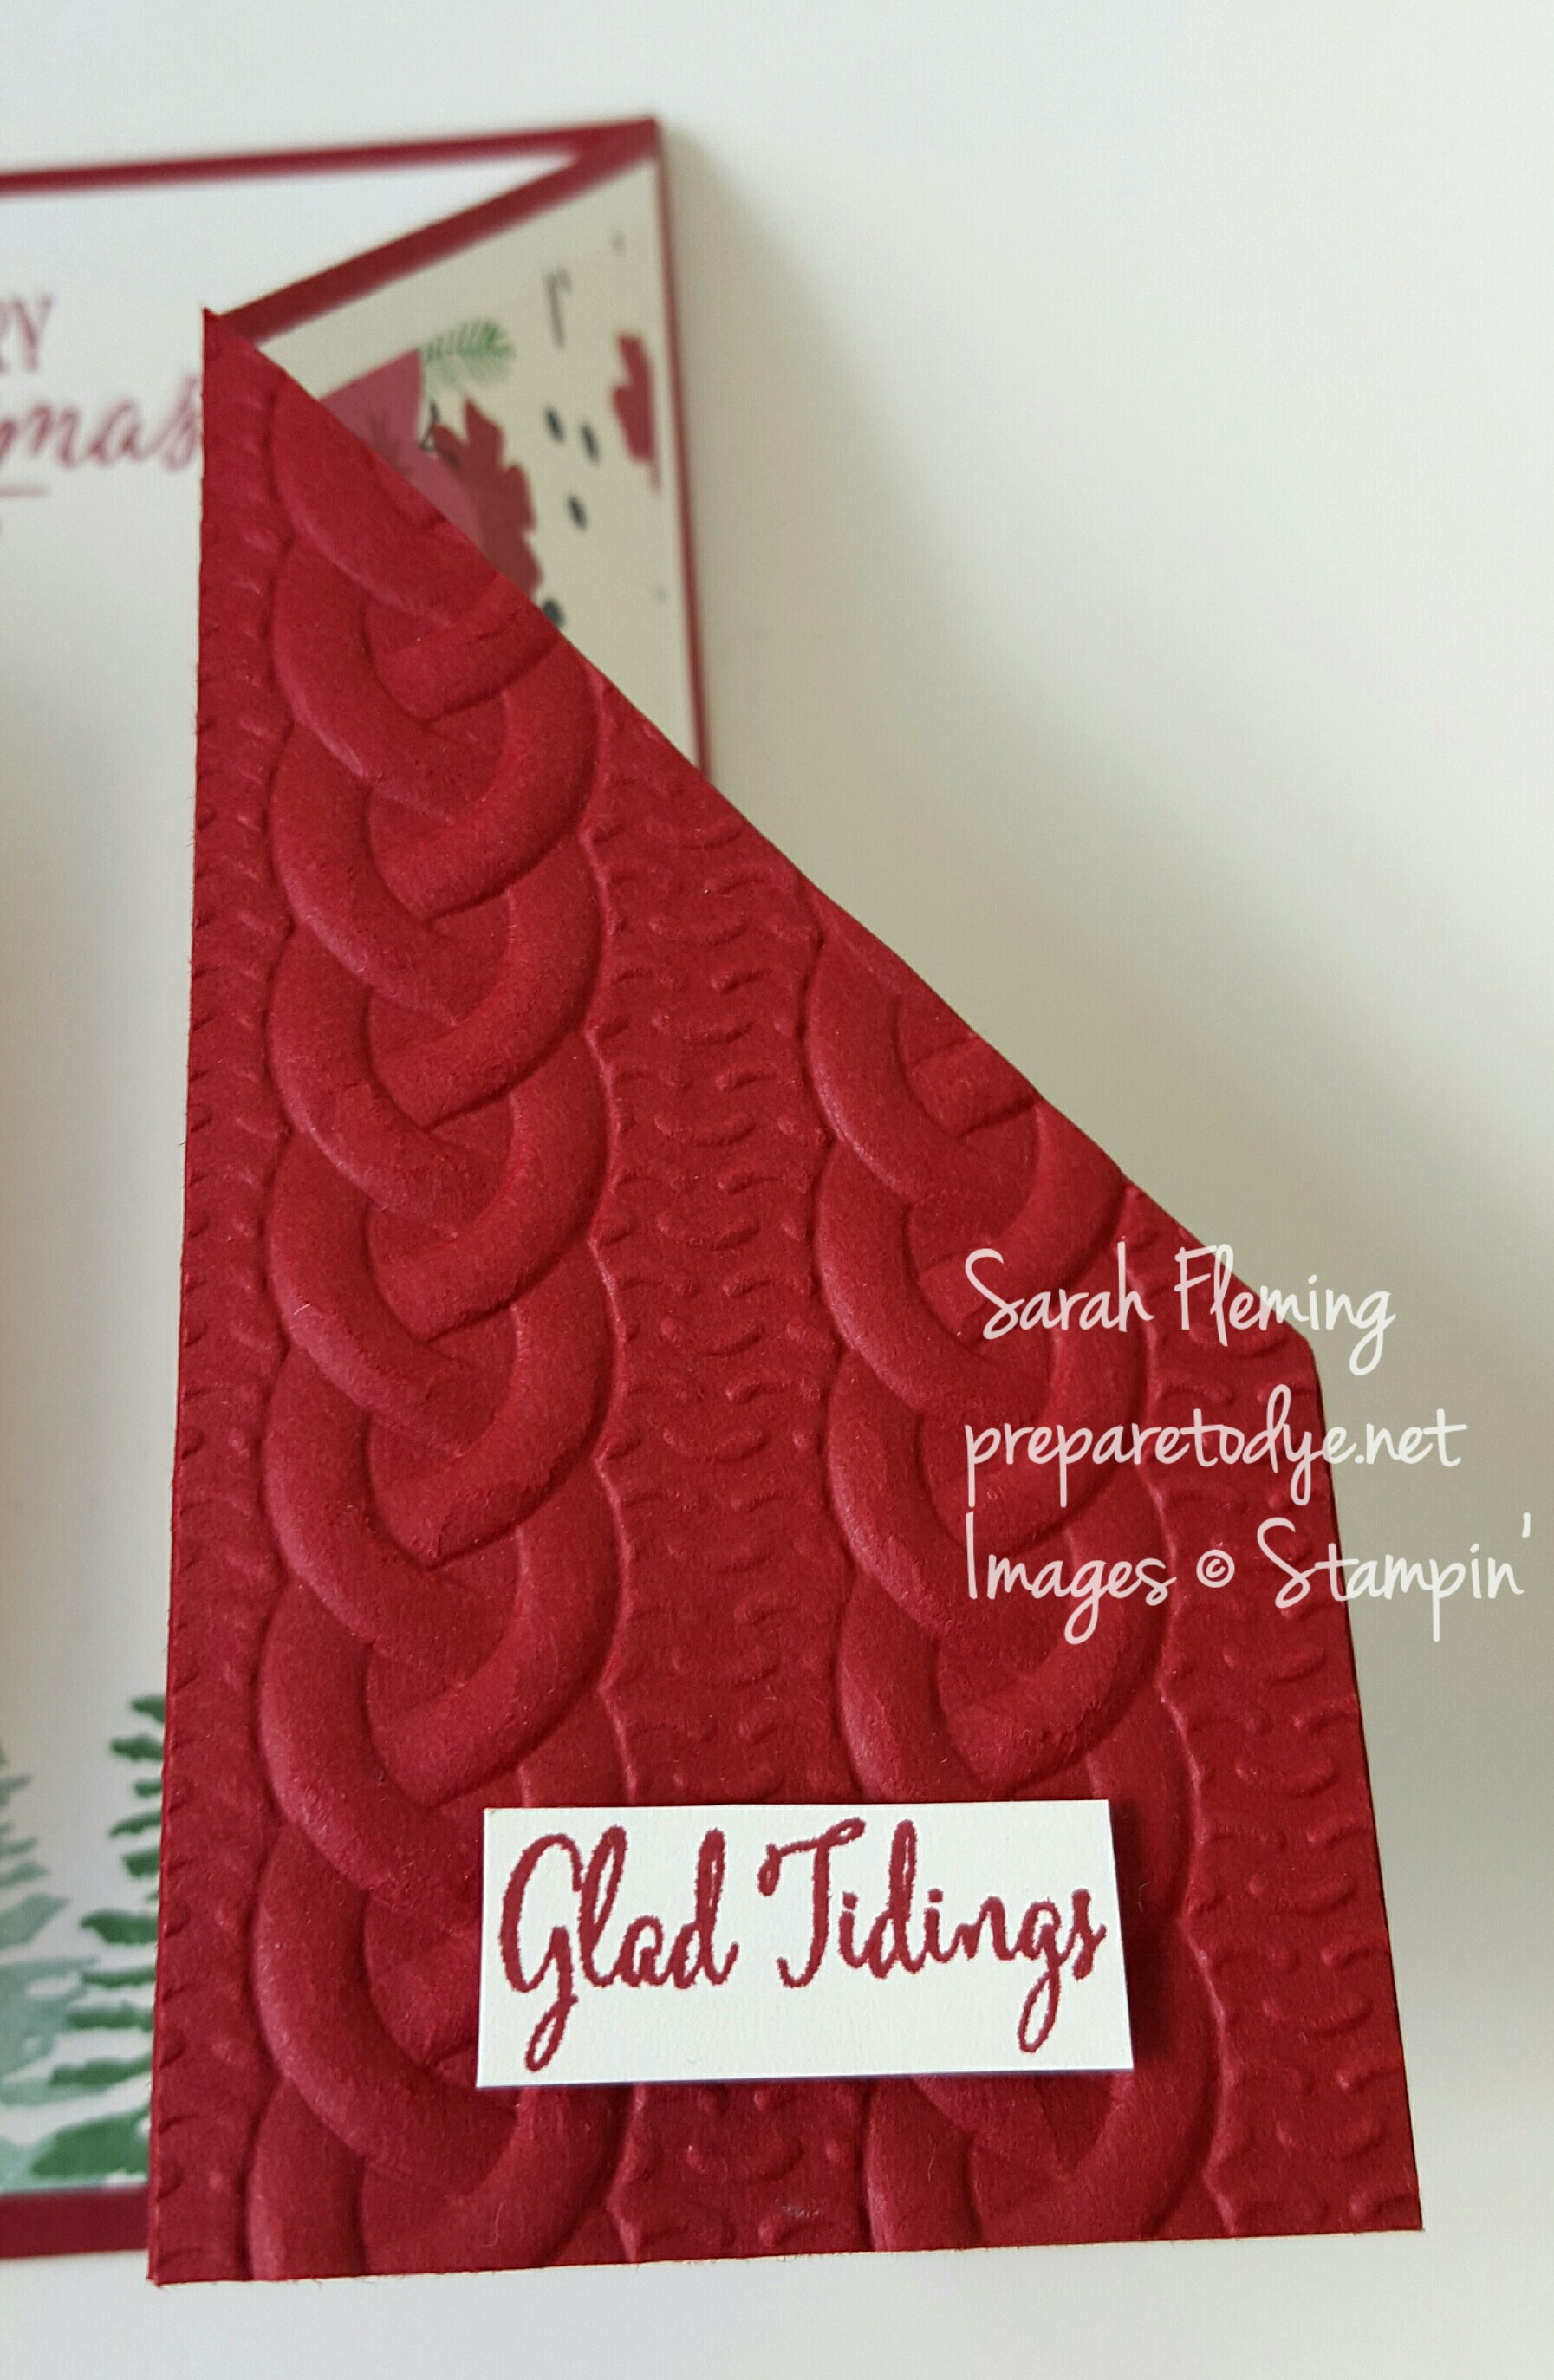 Stampin' Up! Cable Knit embossing folder - Sarah Fleming - Prepare to Dye